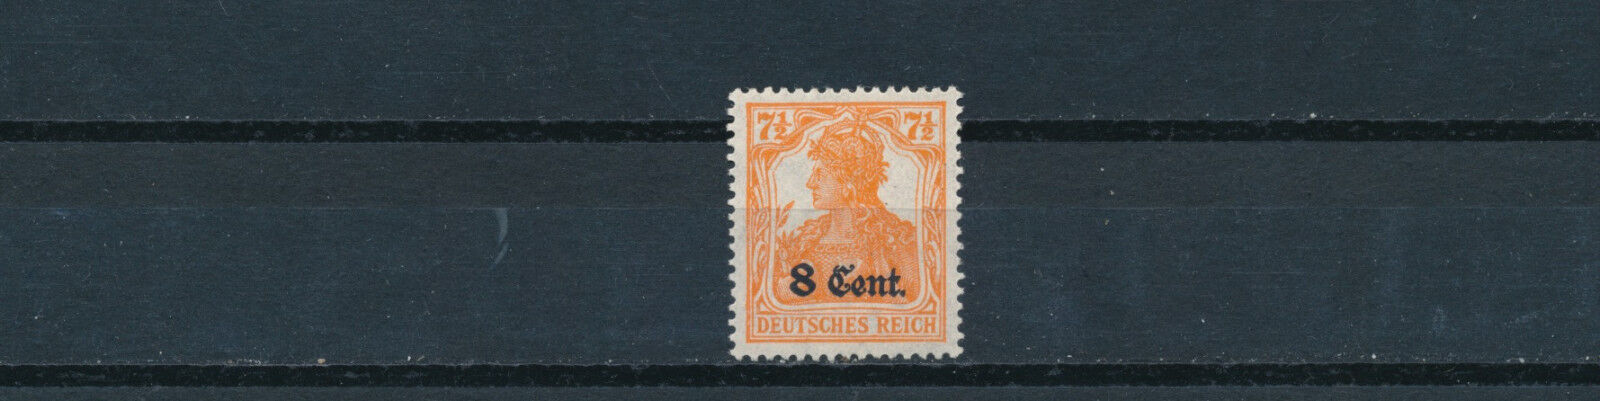 Etappe West 8 Cent. Germania 1916 gute Farbe Michel 3 b geprüft (S14356)